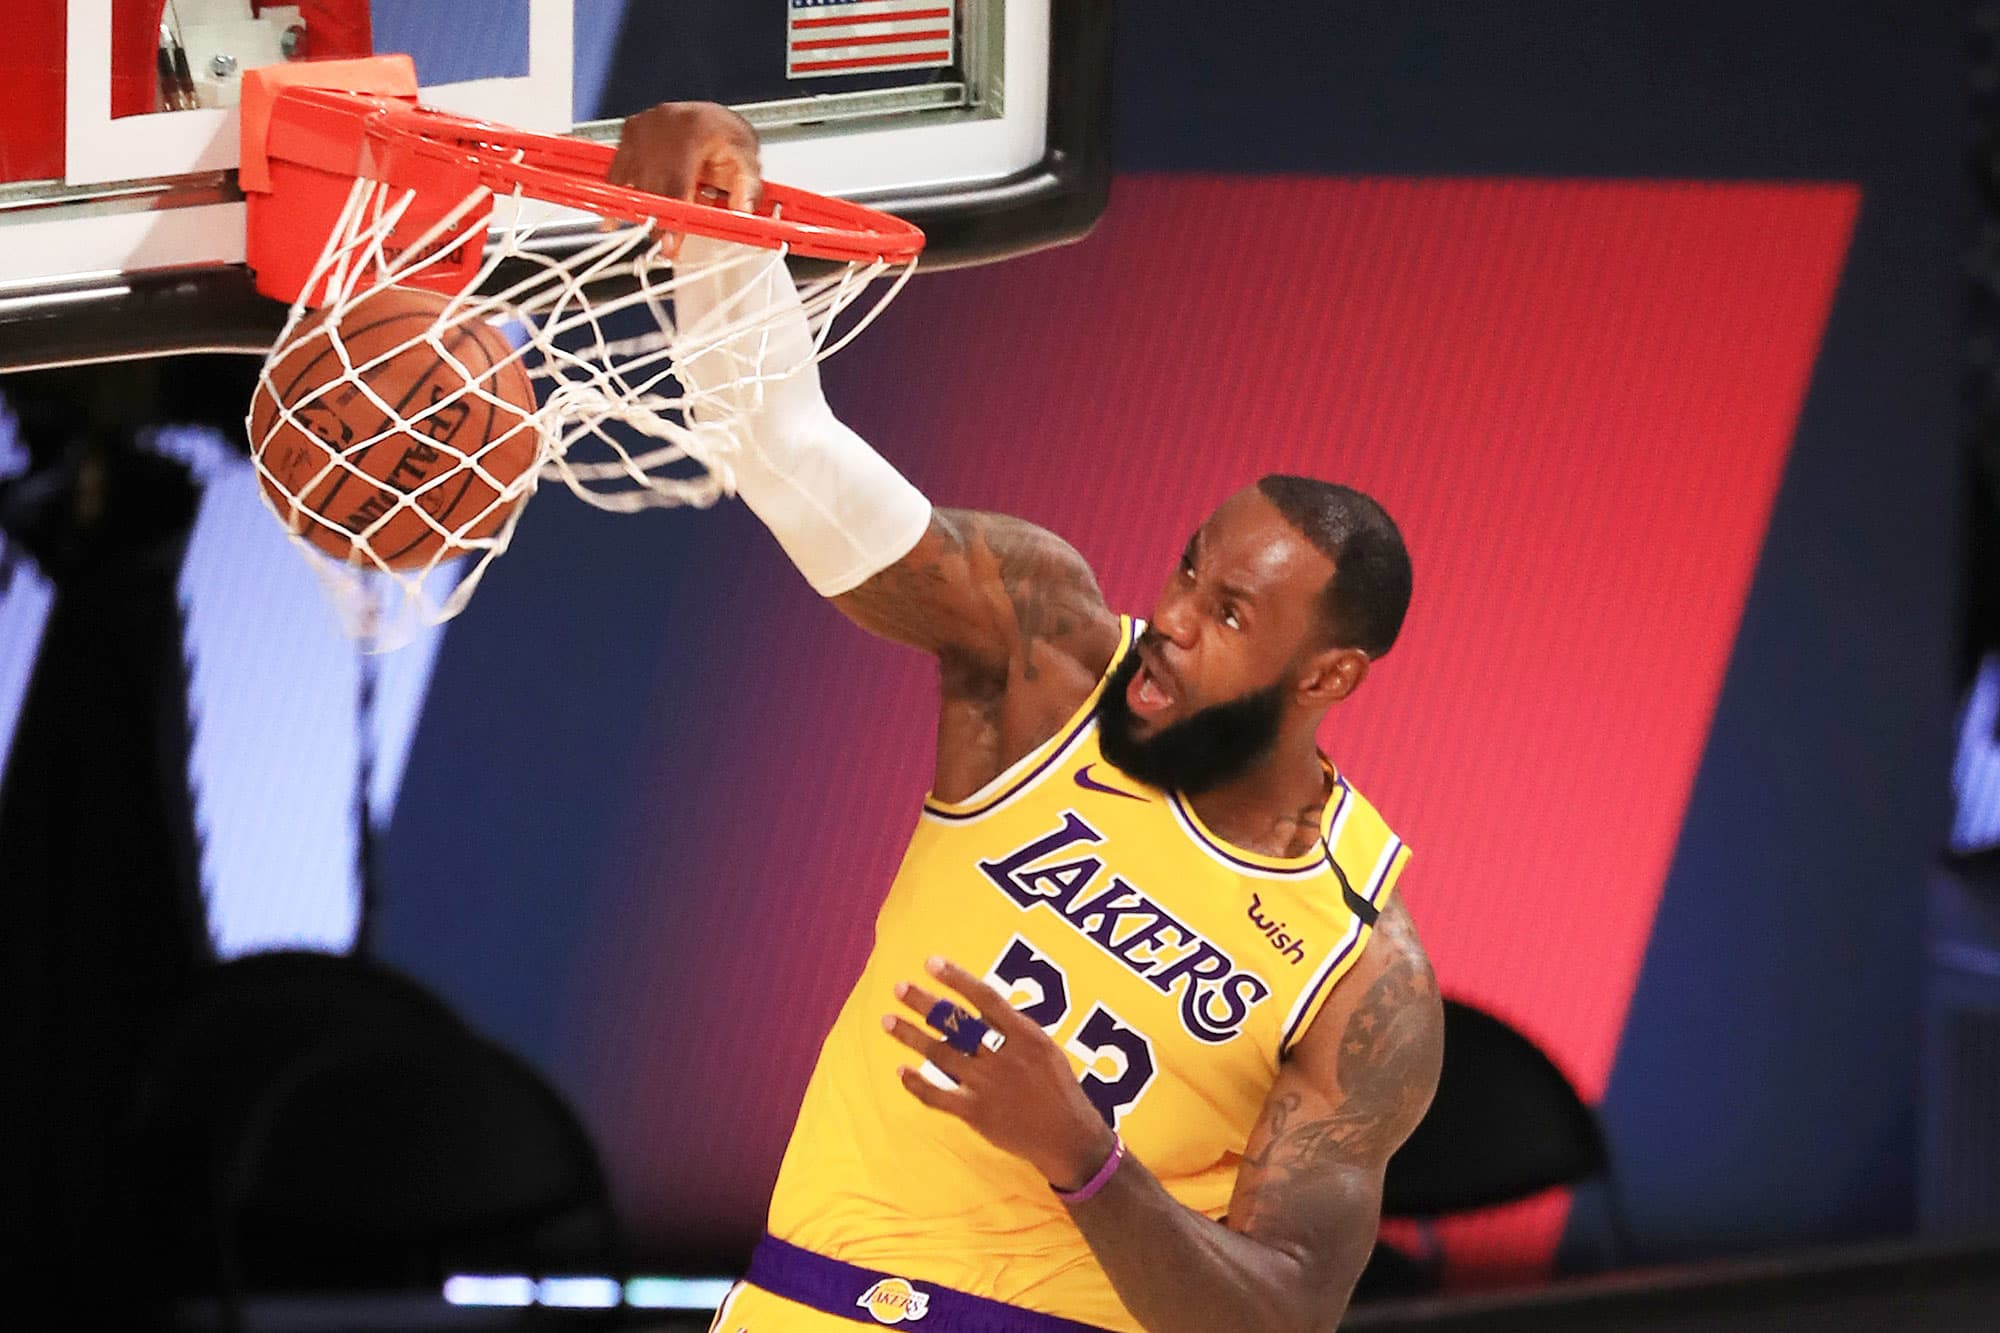 lakers-hire-agency-sportfive-to-find-new-jersey-sponsor-valued-at-nearly-200-million